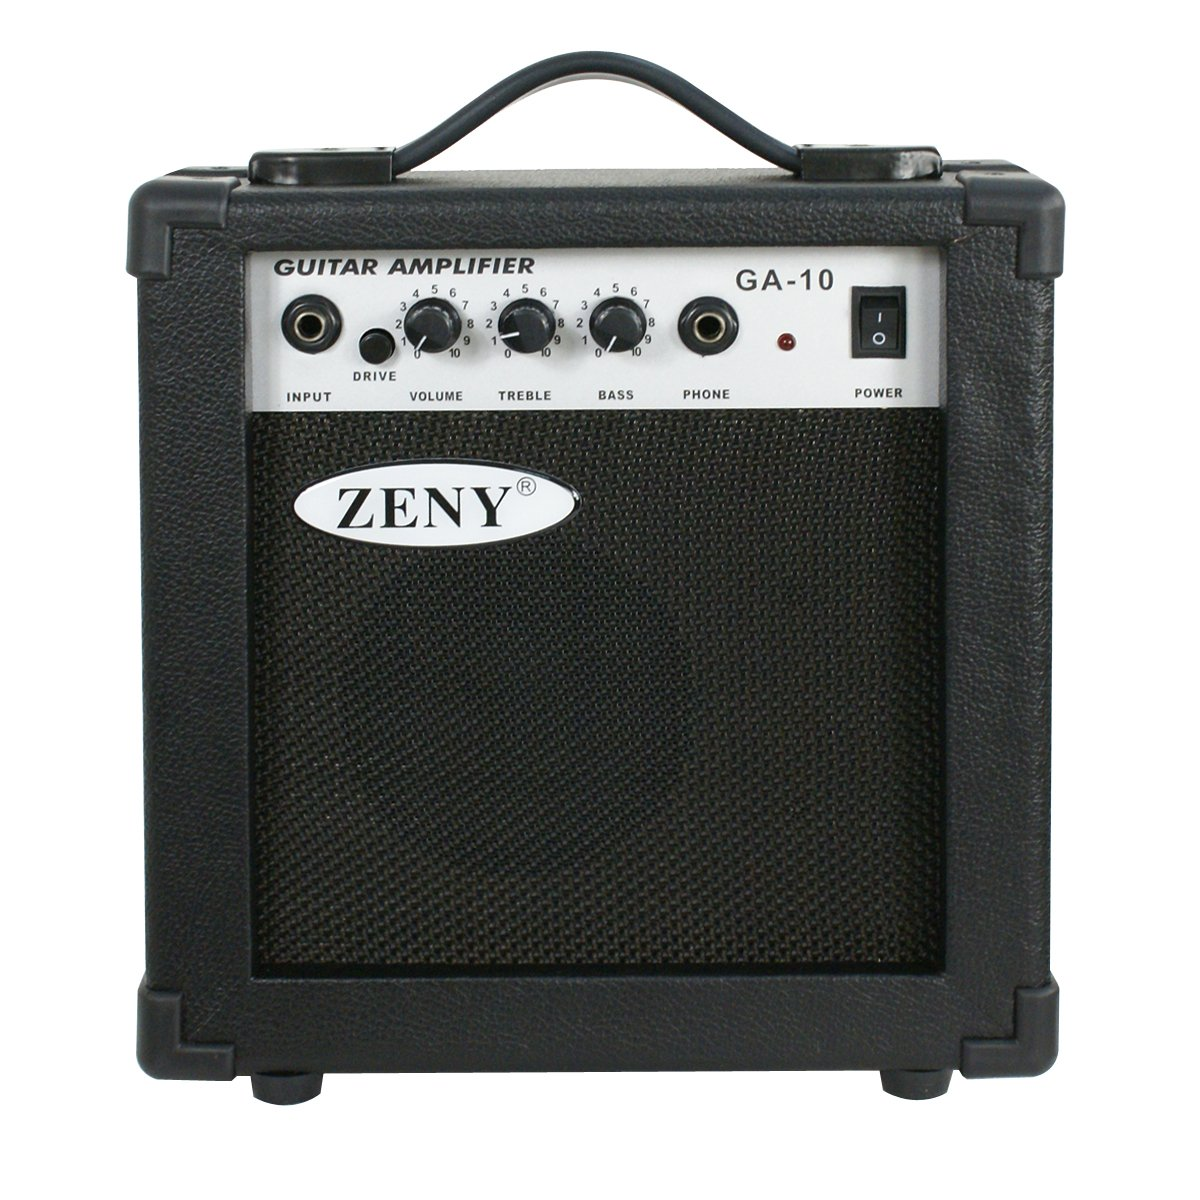 Amplifier that comes with the Black ZENY Electric Guitar